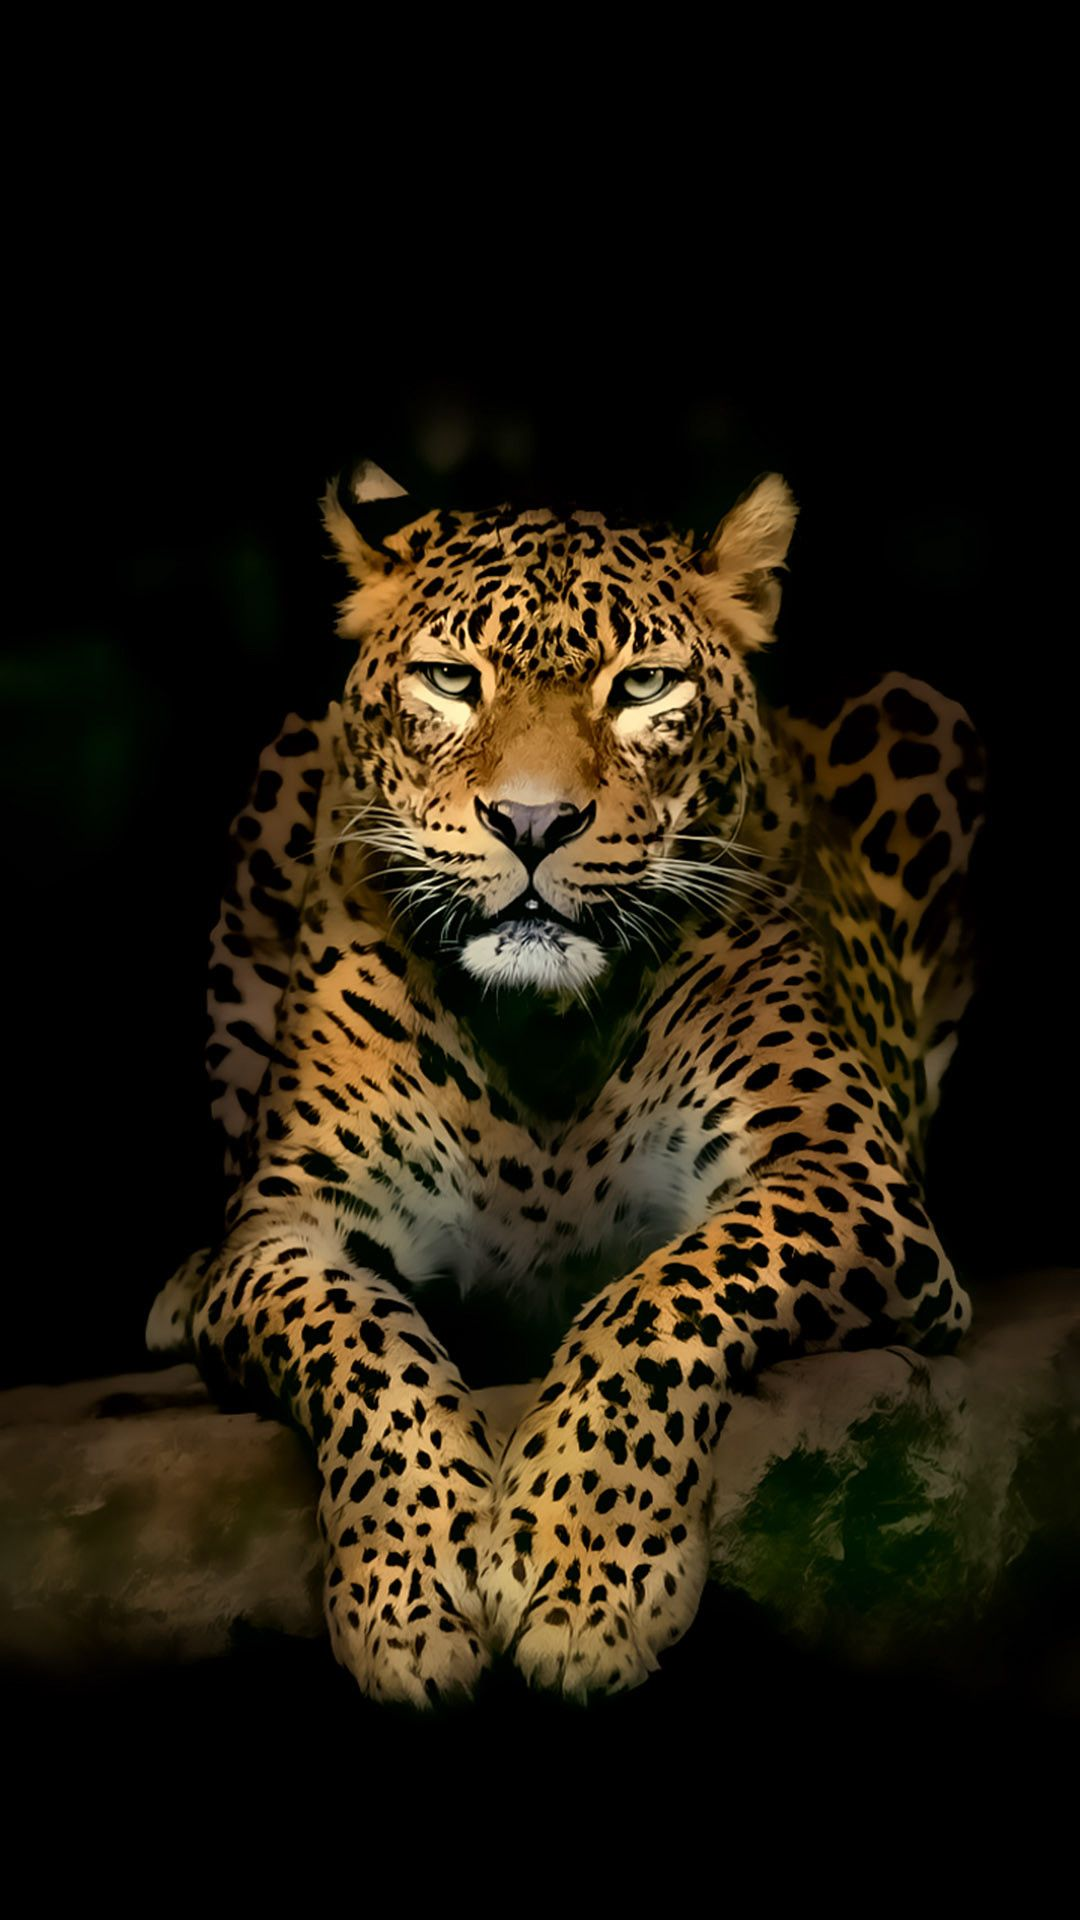 Ultra Hd Wallpapers For Iphone 35 Images Wild Animal Wallpaper Jaguar Animal Leopard Wallpaper